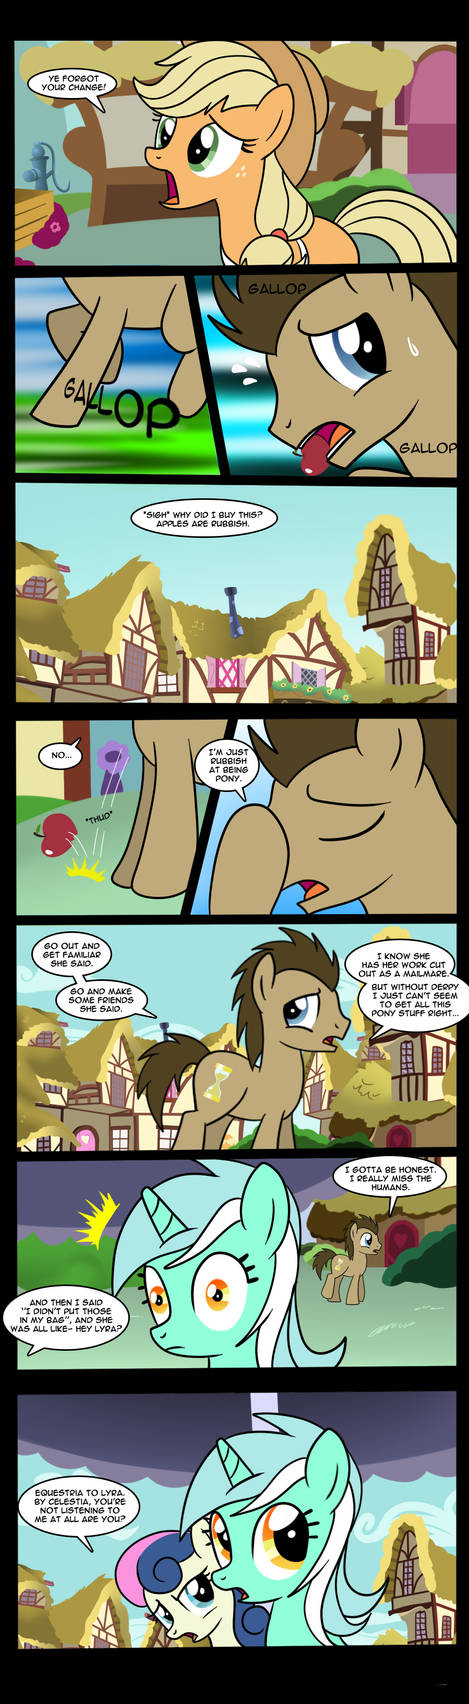 Doctor Whooves-This Is Where It Gets Complicated 1 by Edowaado